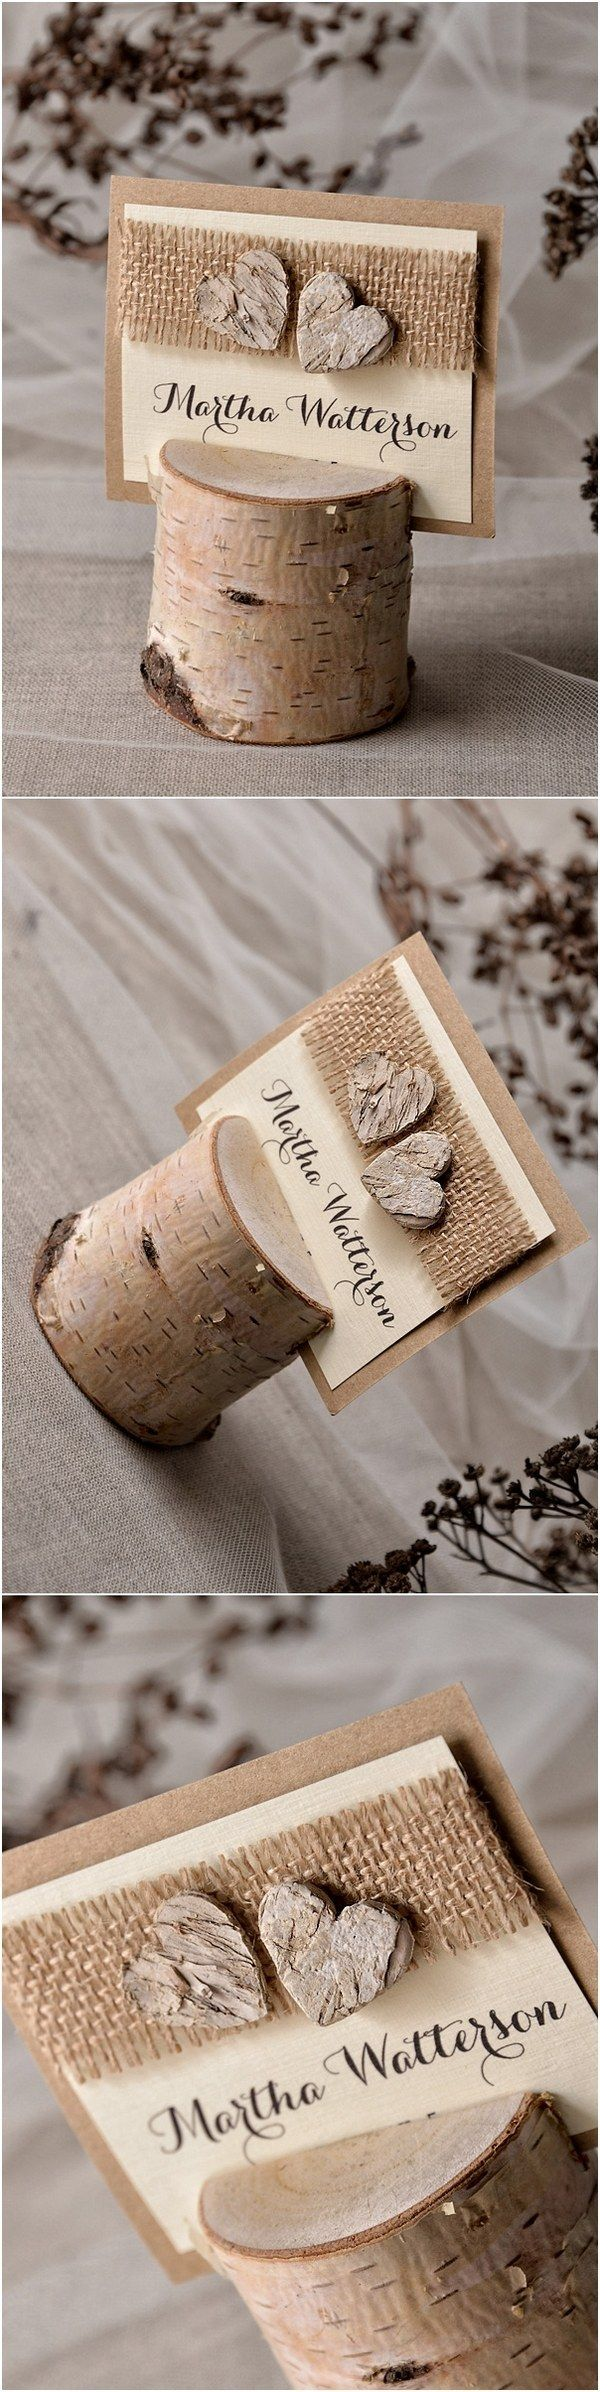 wood wedding card holders%0A Rustic country burlap and birch real wood wedding place cards   countrywedding  rusticwedding  dpf